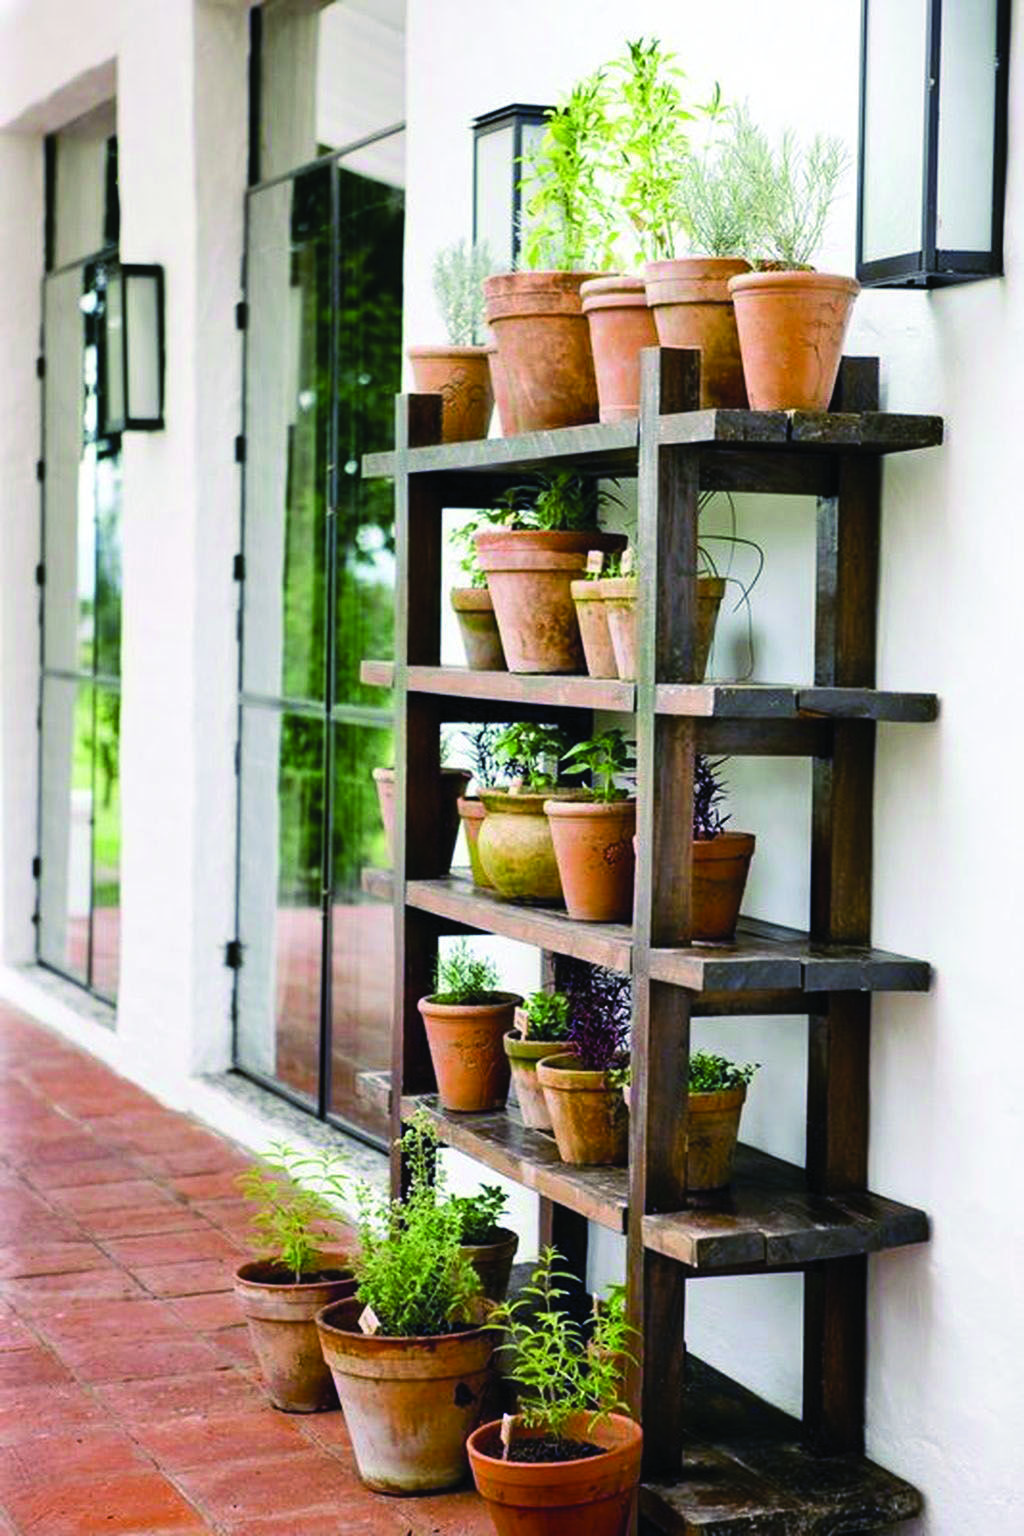 Superior Balcony Zen Garden Ideas One And Only Shopyhomes Com Diy Plant Stand Outdoor Shelves Plant Stands Outdoor